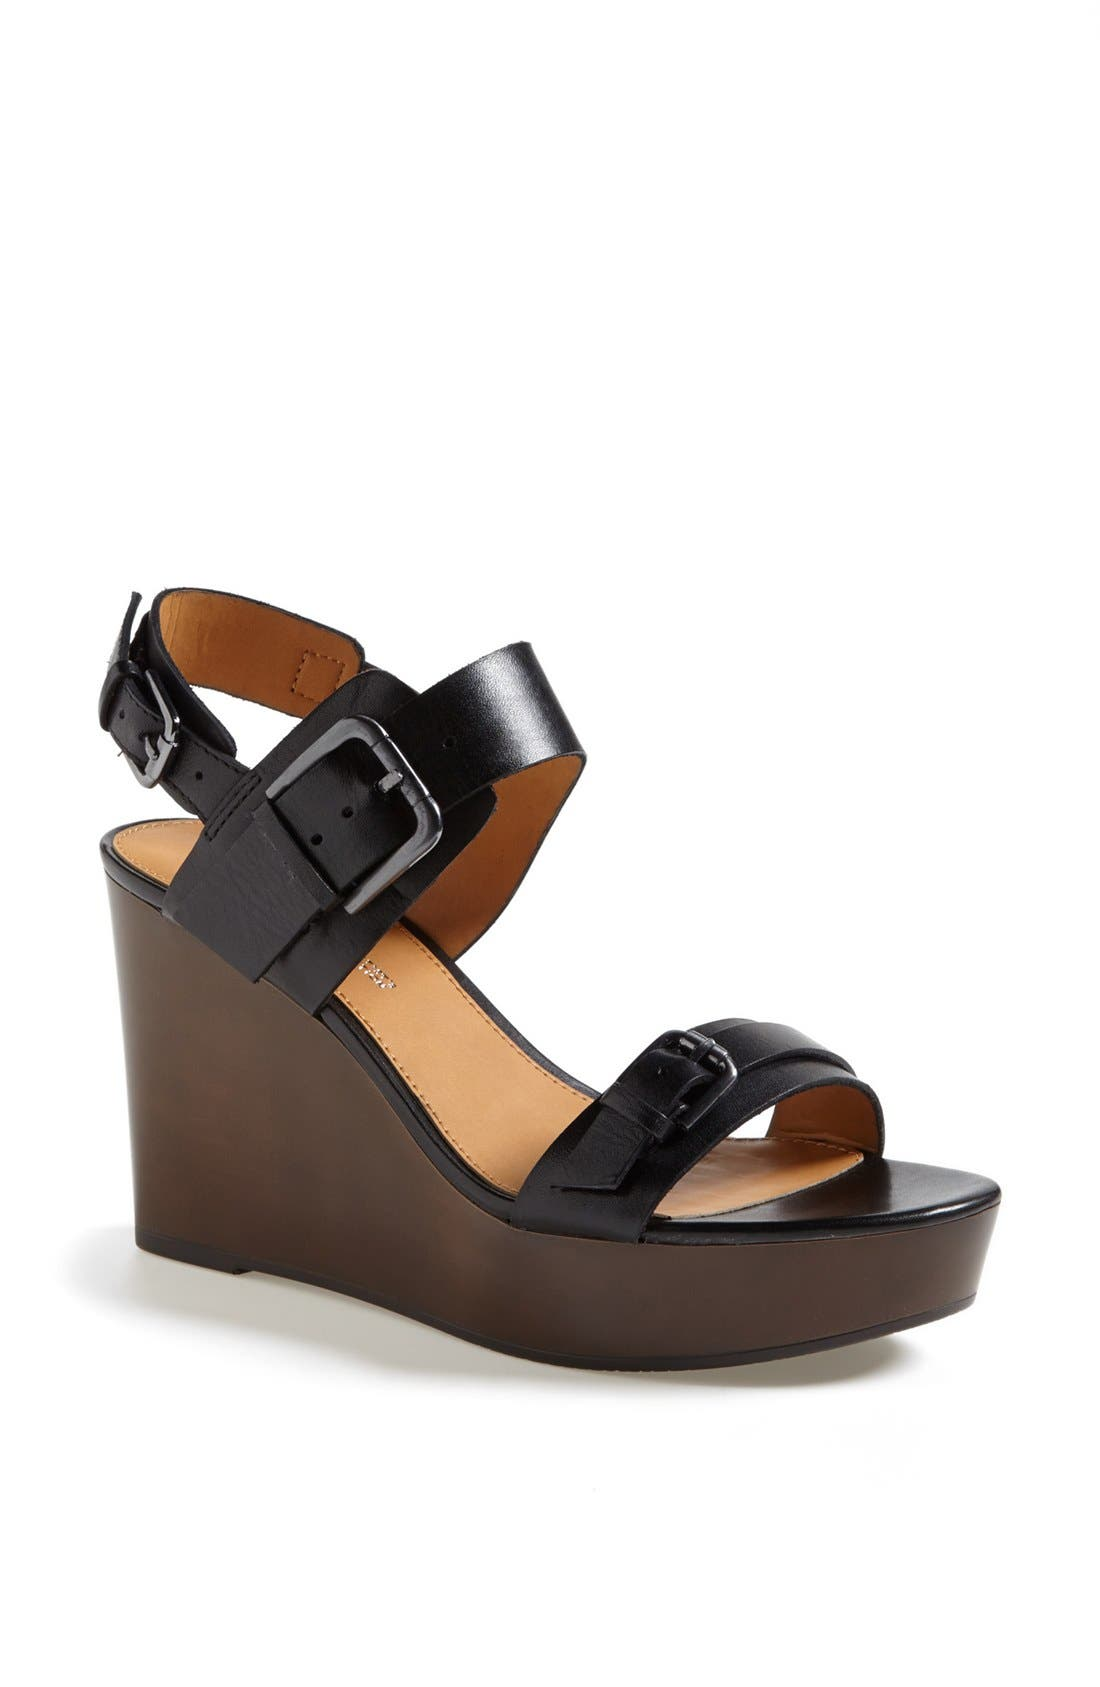 Alternate Image 1 Selected - Franco Sarto 'Divine' Sandal (Nordstrom Exclusive)